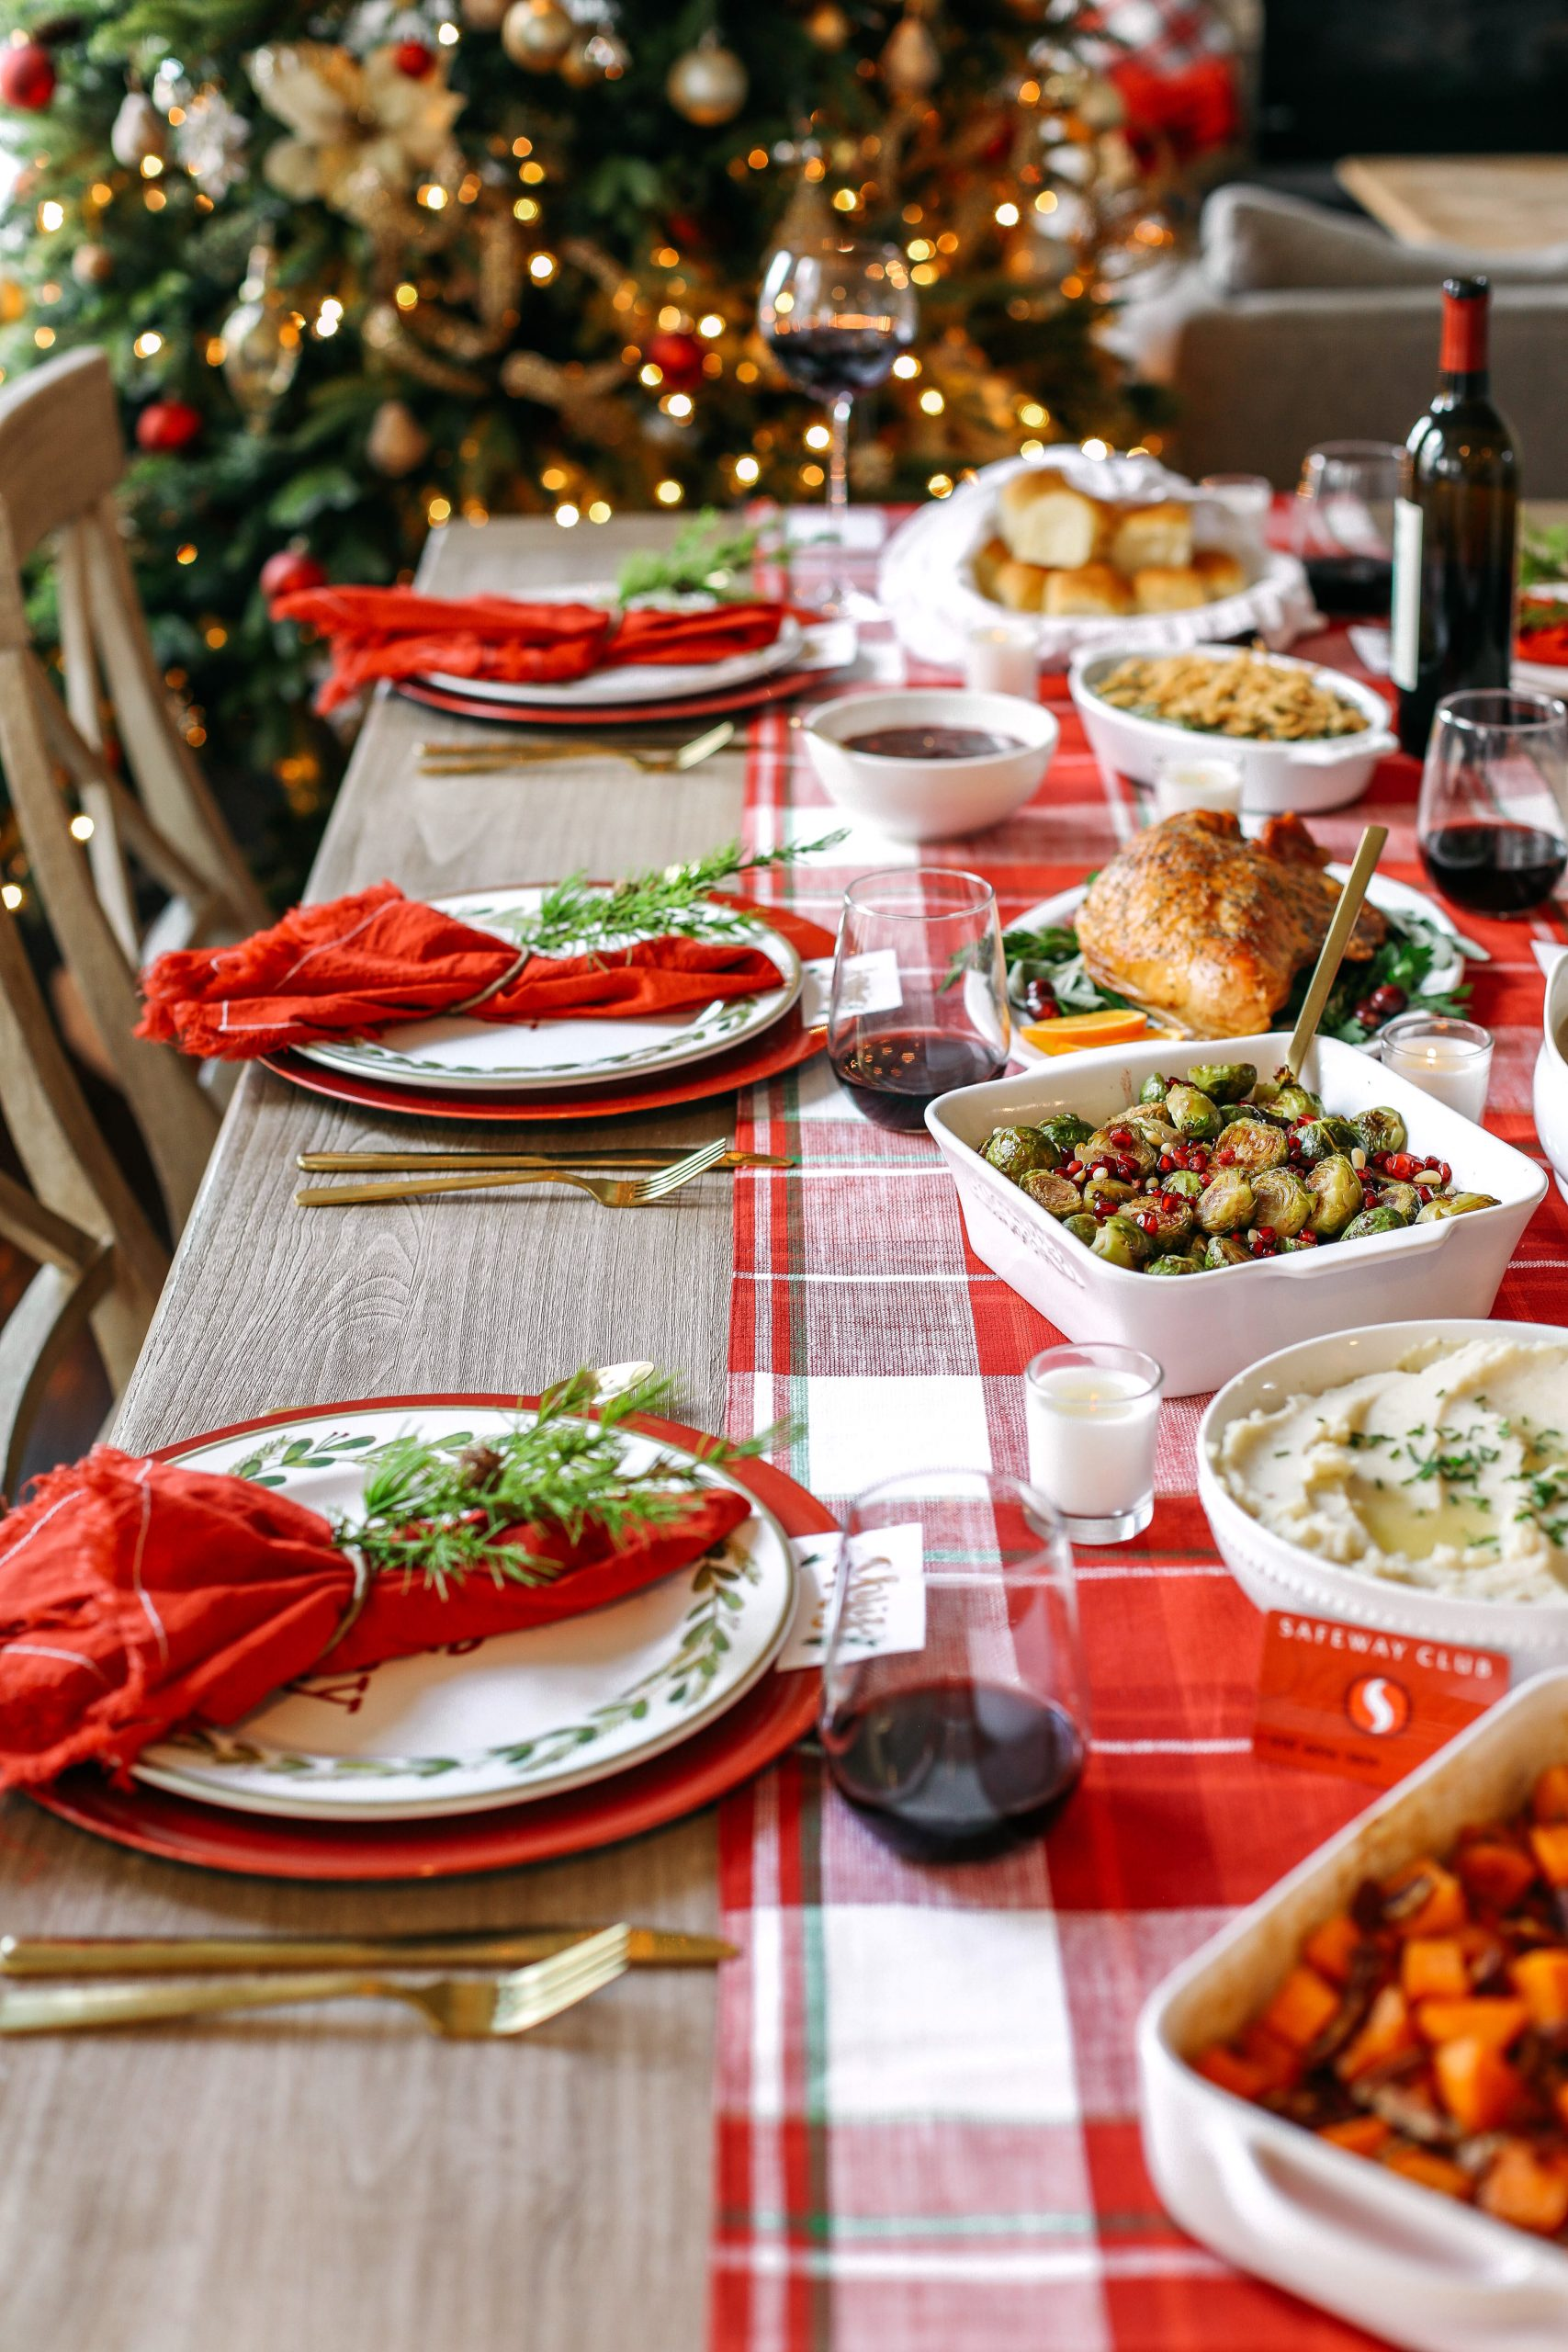 Celebrate the season and create lasting memories by a hosting a small holiday gathering this Christmas with classic dishes your family is sure to enjoy!